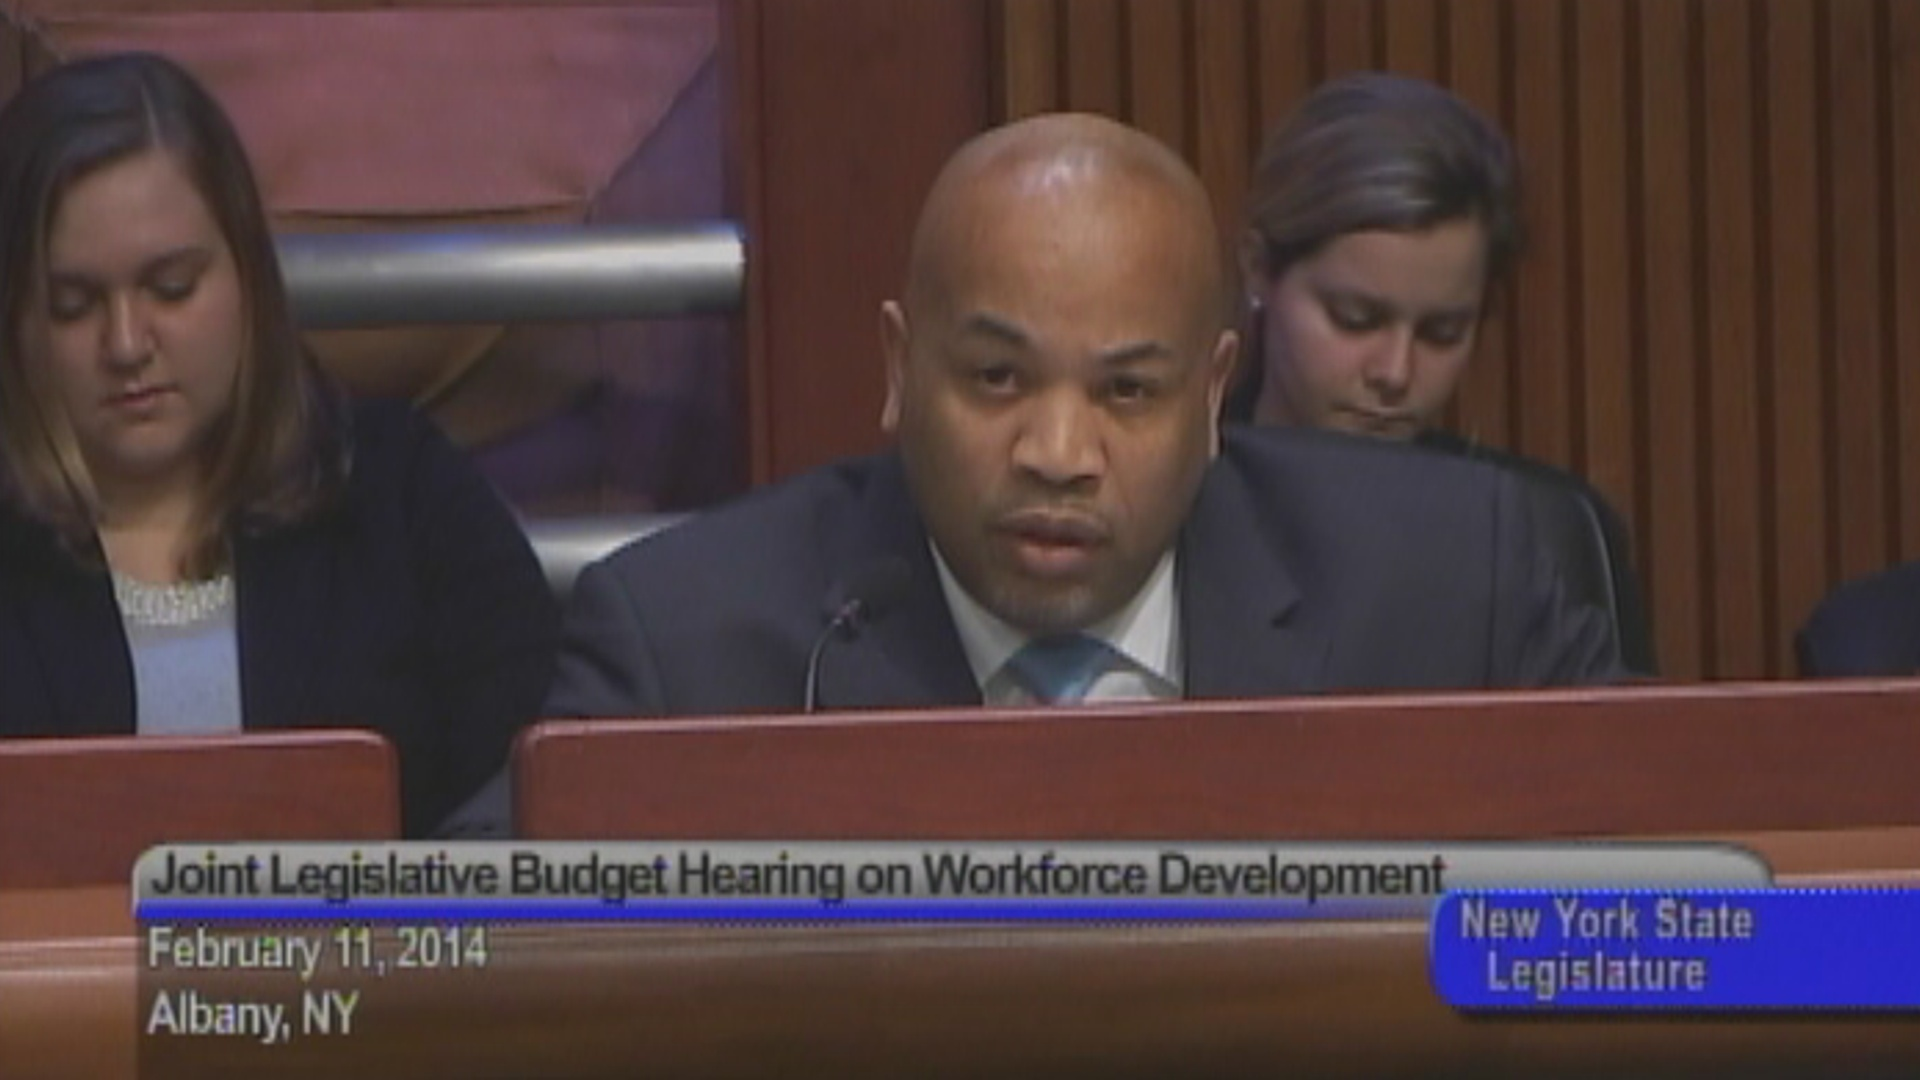 Budget Hearing on Workforce Development